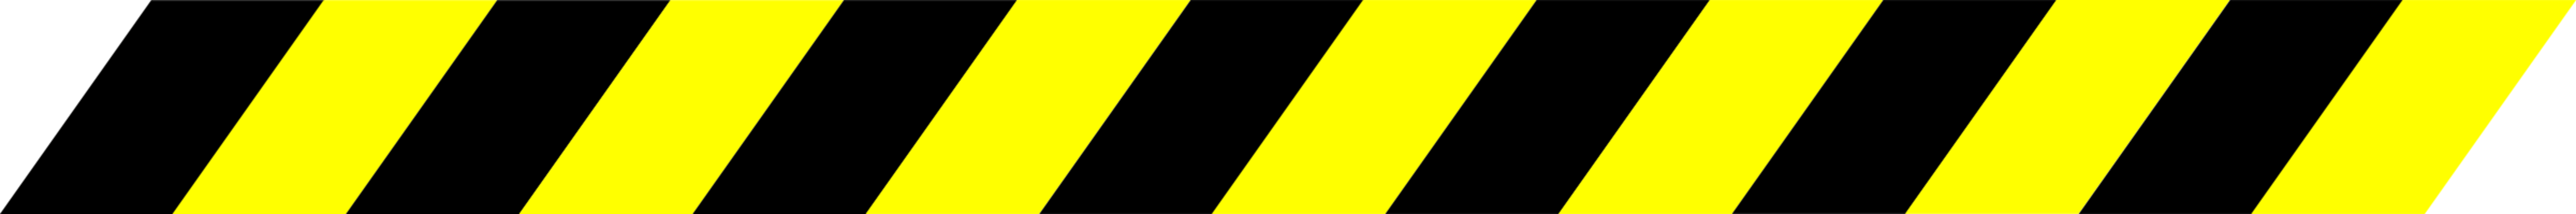 Barricade stripe computer icons. Tape clipart yellow jpg black and white library